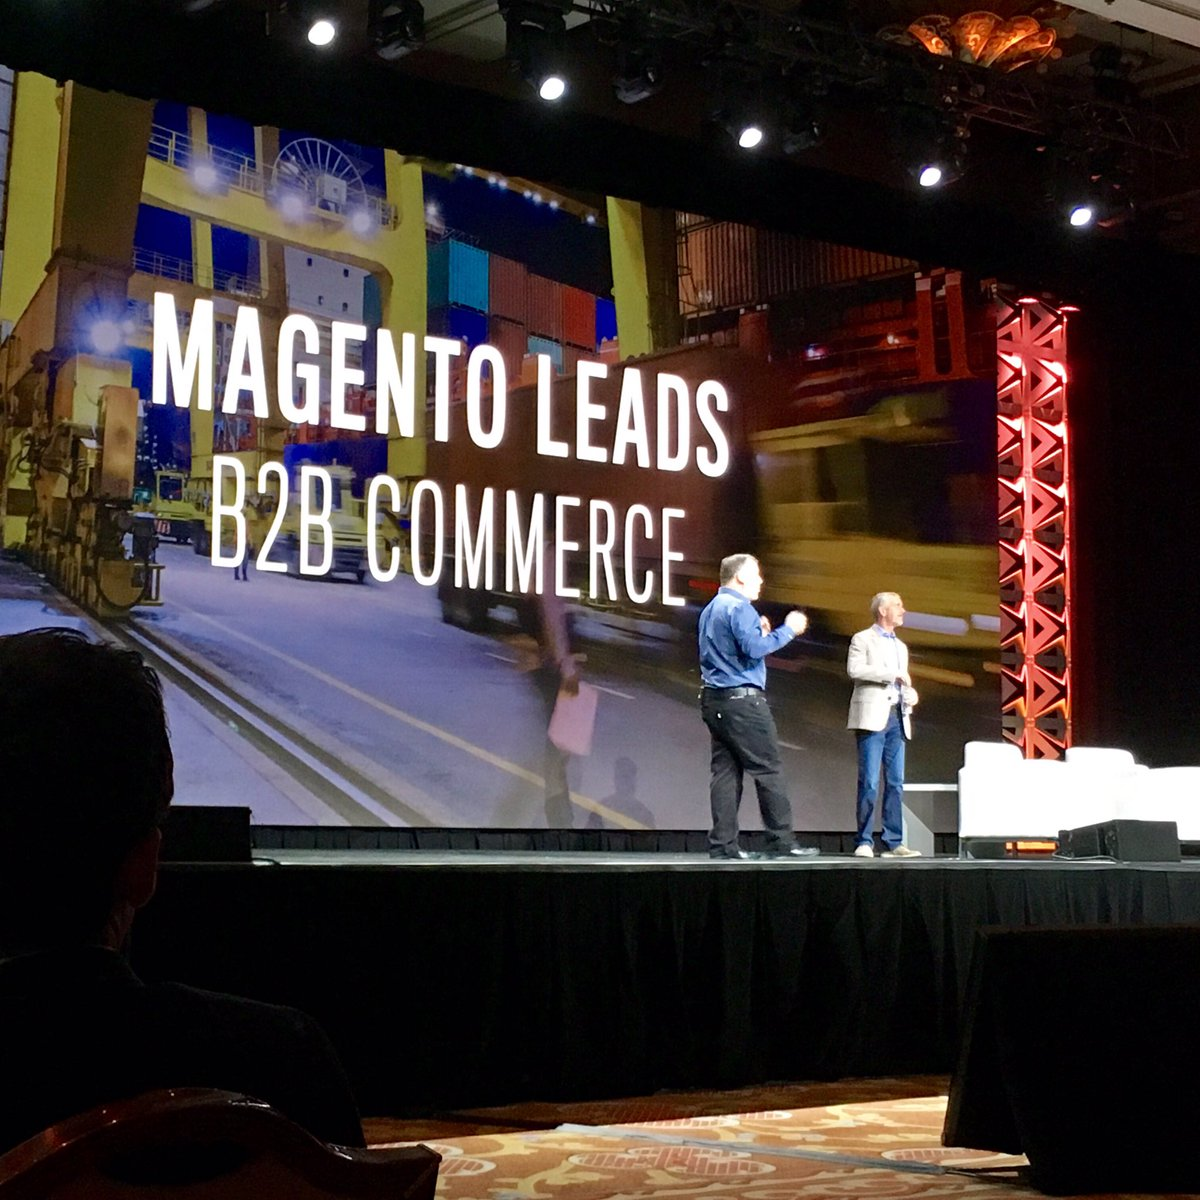 integer_net: #Magentoimagine keynote #3 - we are curious to hear what @ProductPaul has in store for us https://t.co/wm0DxrYoXV